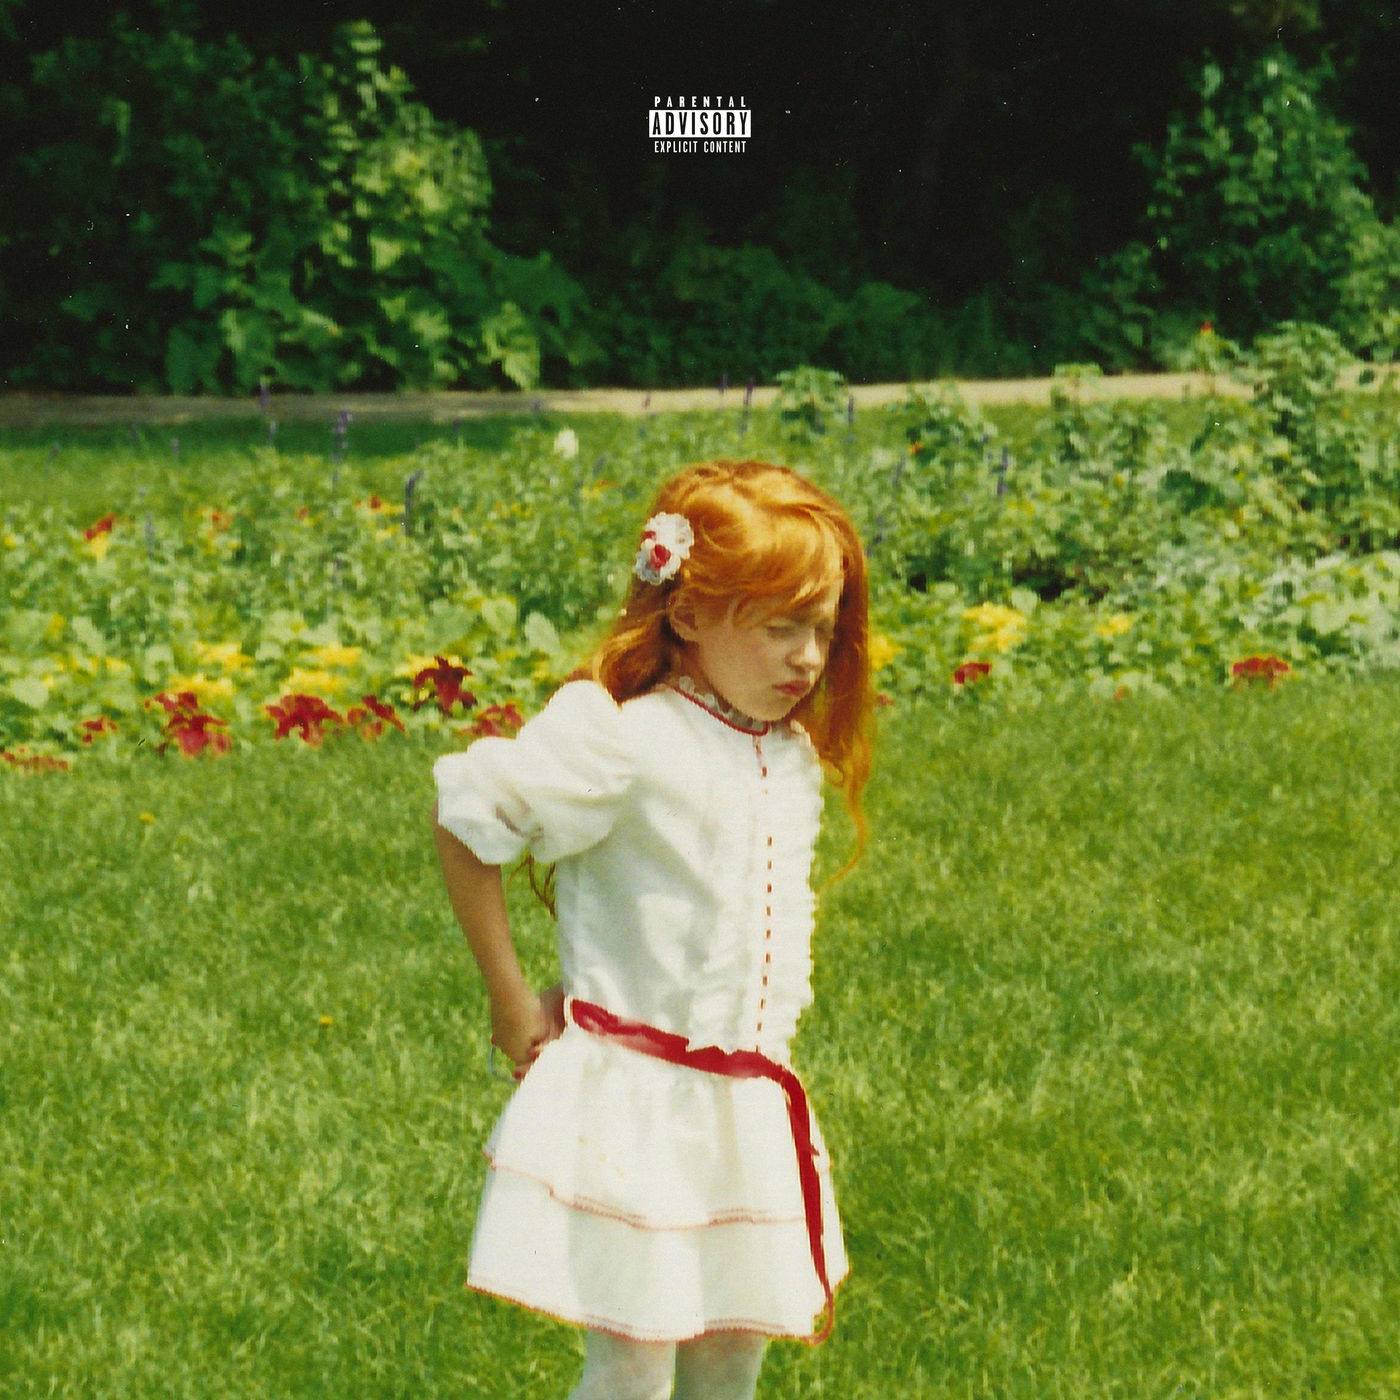 Rejjie Snow - Egyptian Luvr (feat. Aminé) - Single Cover